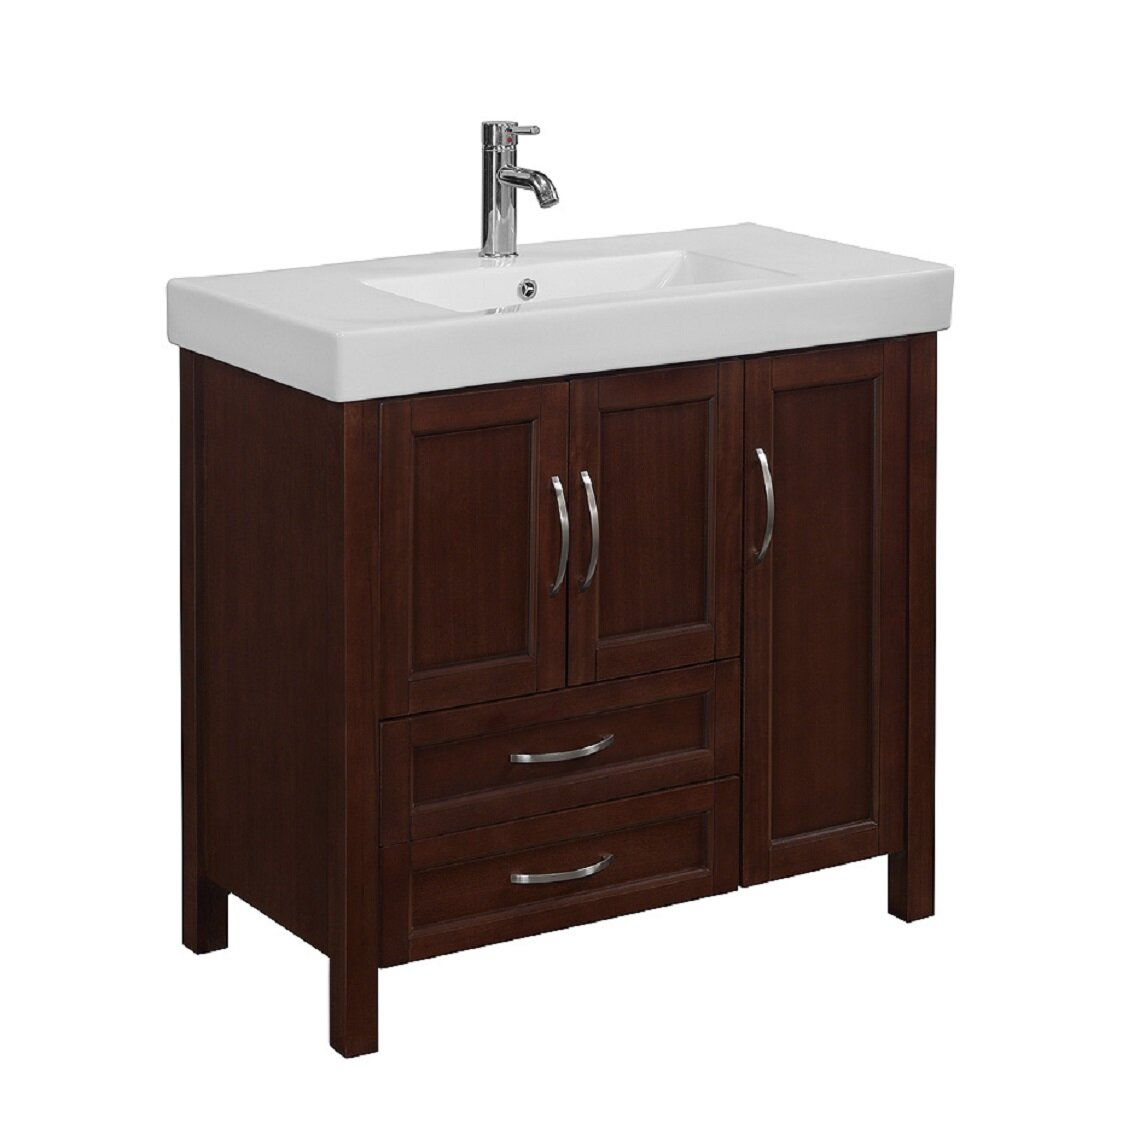 Runfine group larissa 36 single bathroom vanity set for Bathroom bathroom bathroom